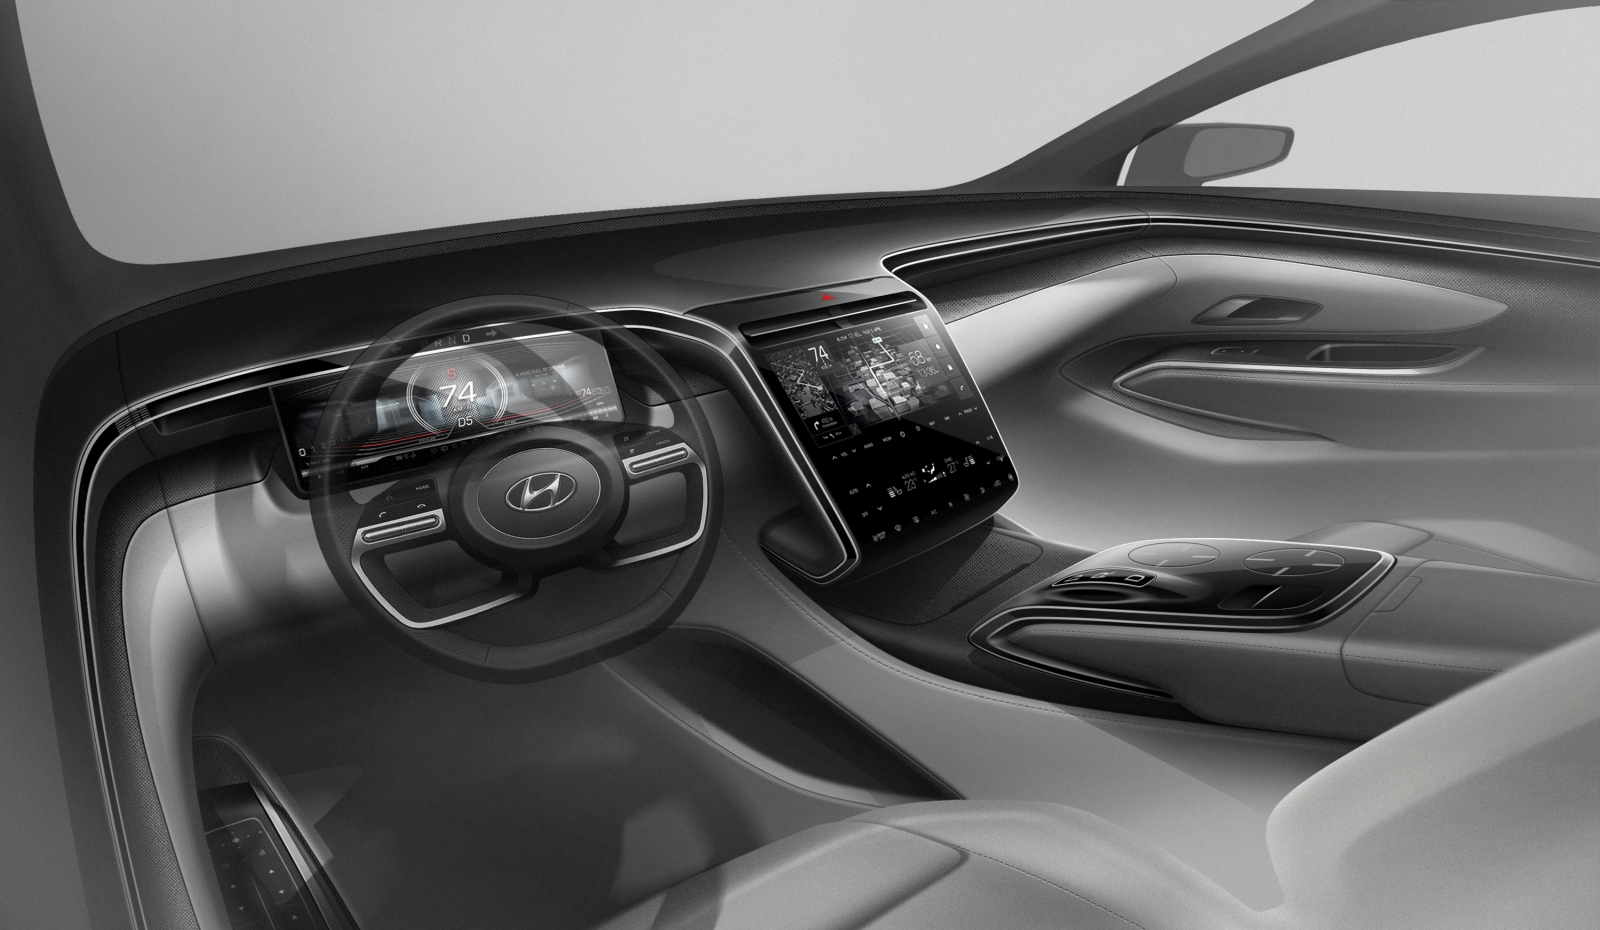 hyundai-tucson-adds-revolutionary-redesign-03